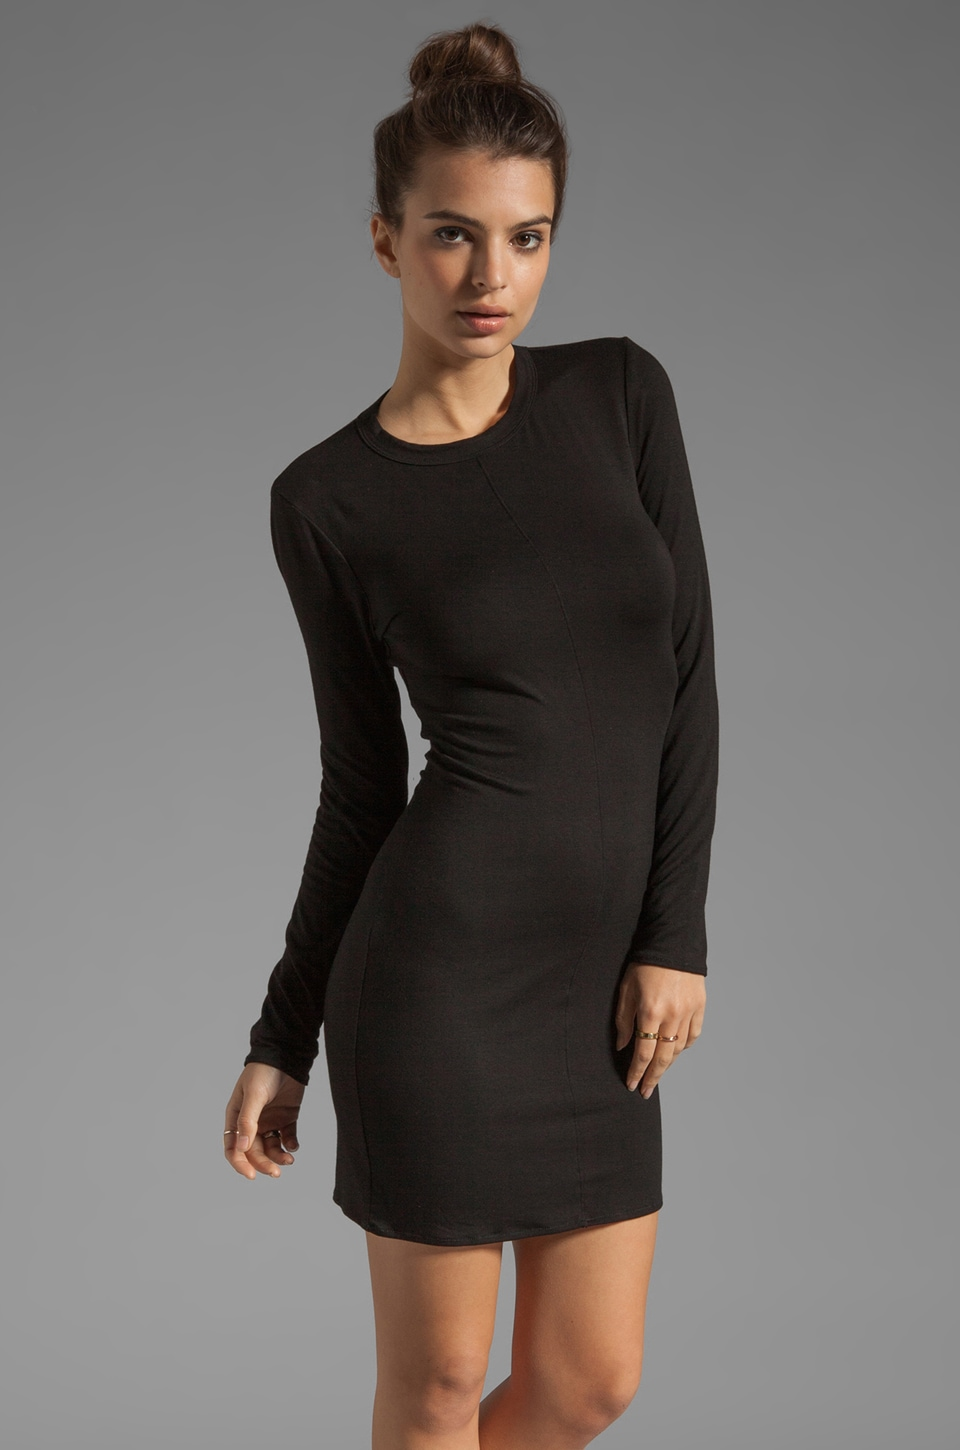 fLuXuS Long Sleeve Joey Dress in Black